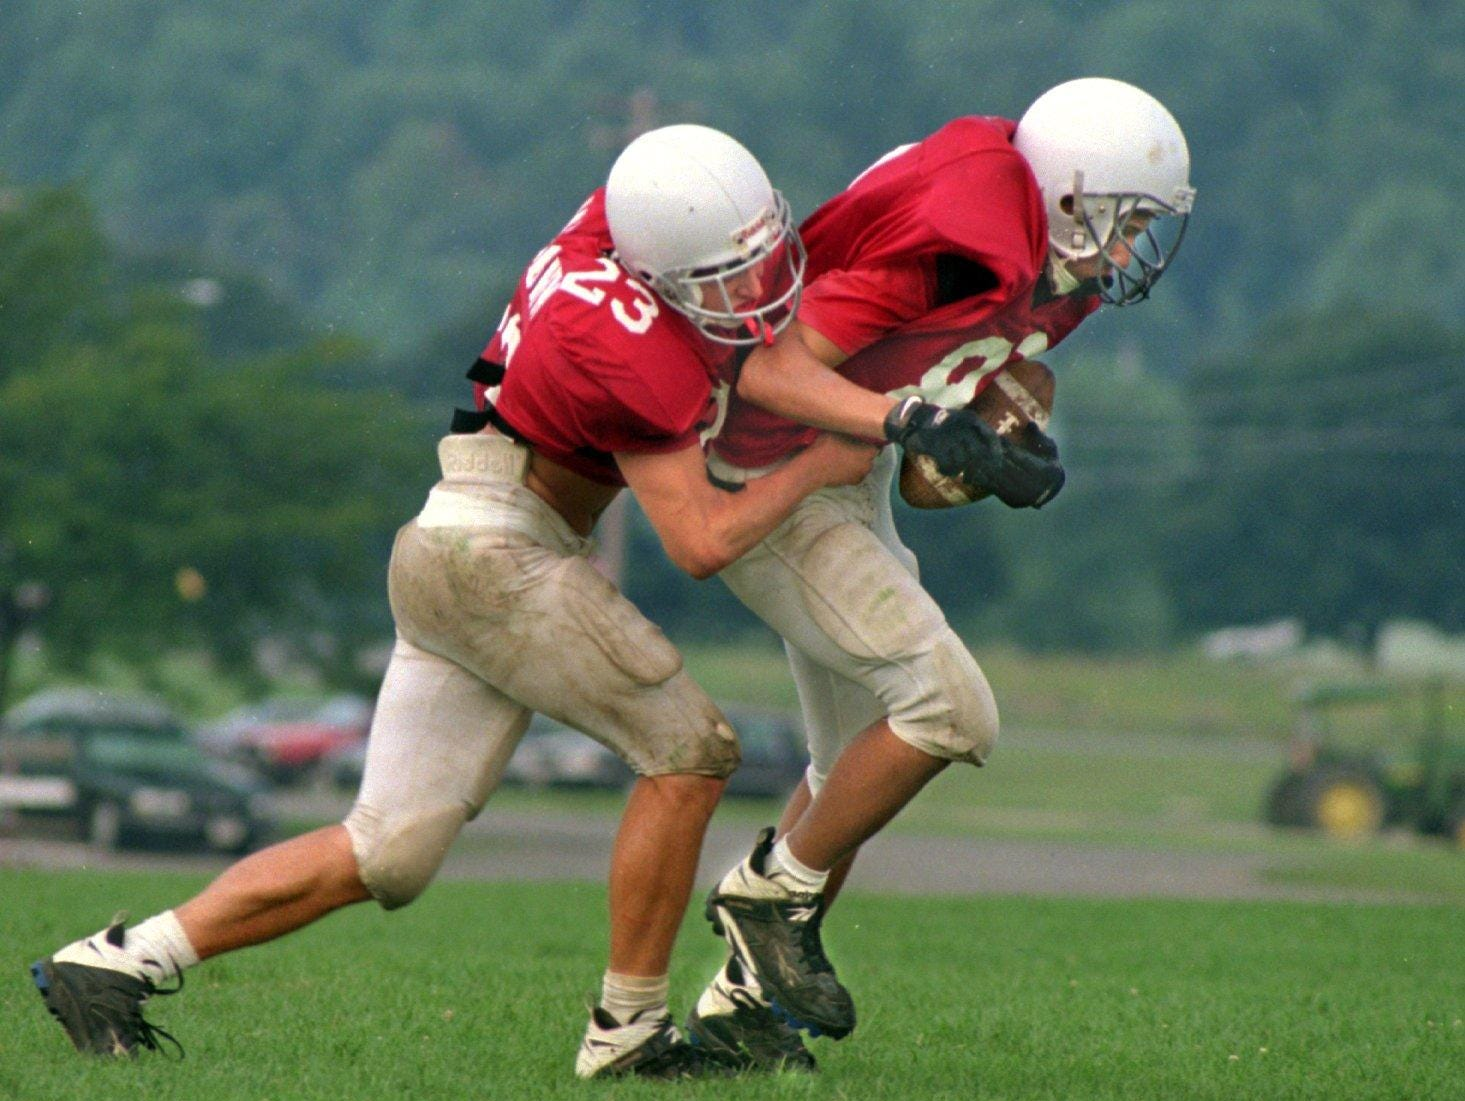 From 1996: HS Tab Newark Valley's Taylor Vaughn (#23) pulls down John Cornell during defensive drills at practice.